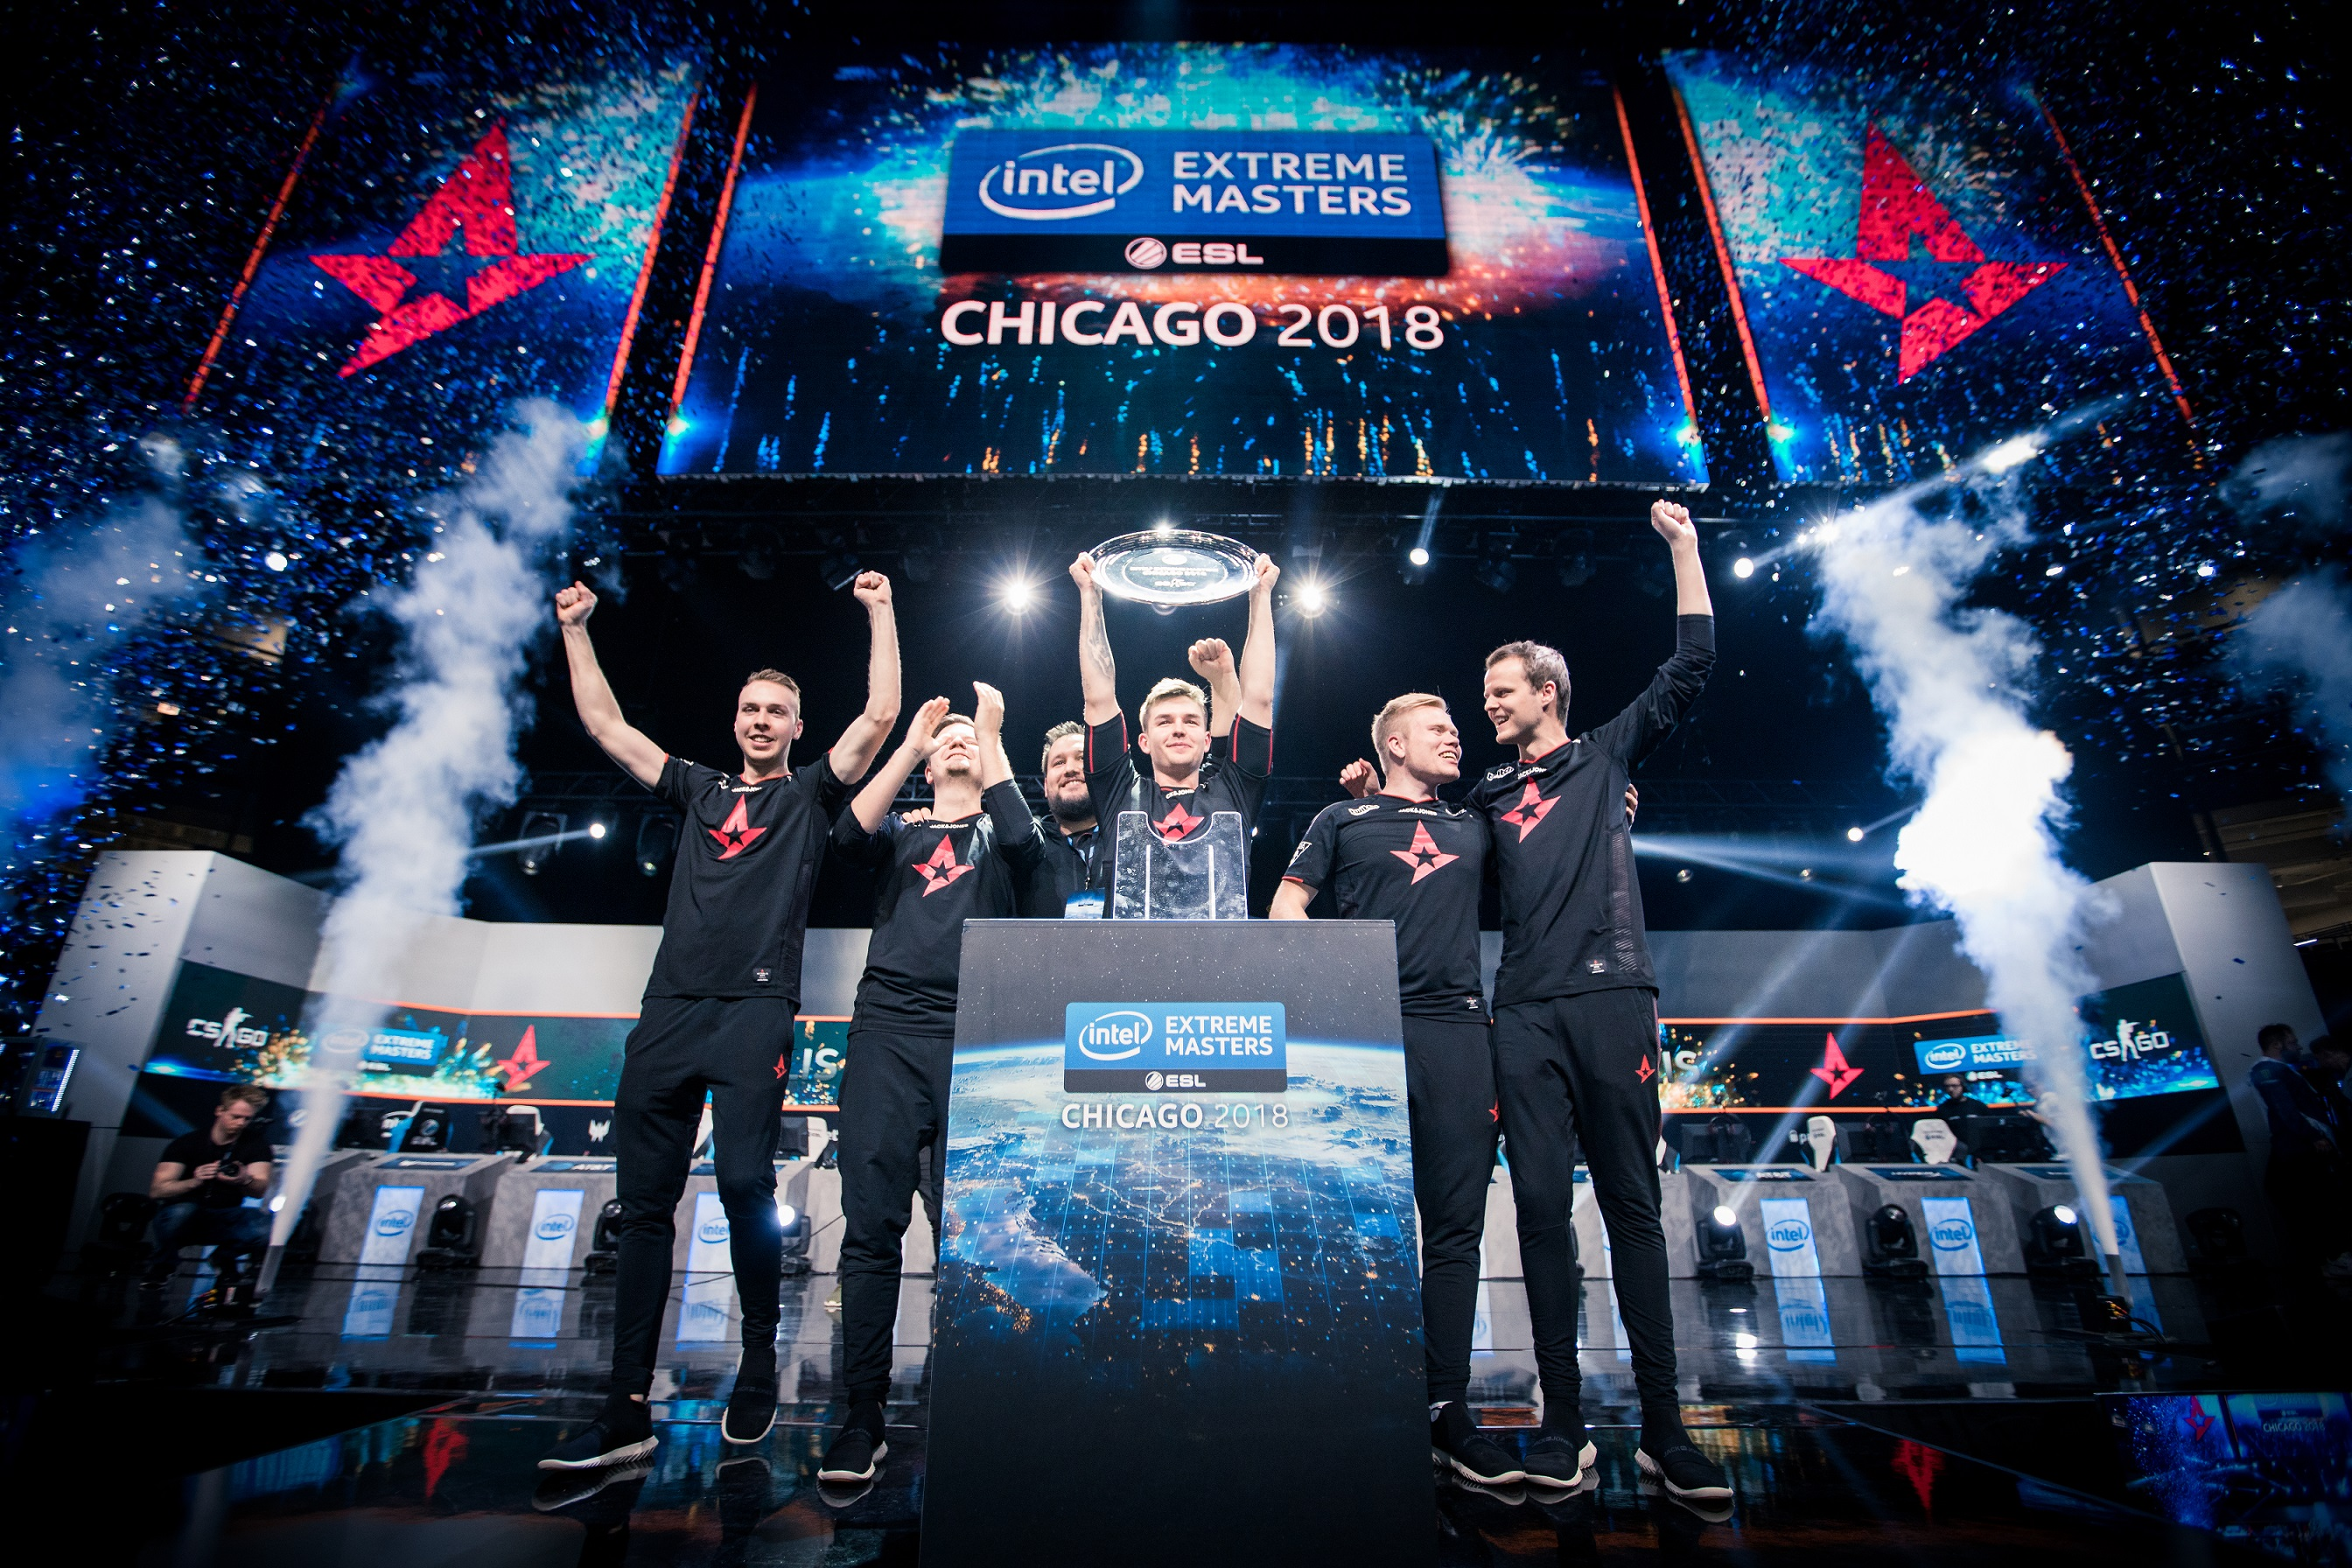 Astralis winning IEM Chicago 2018.